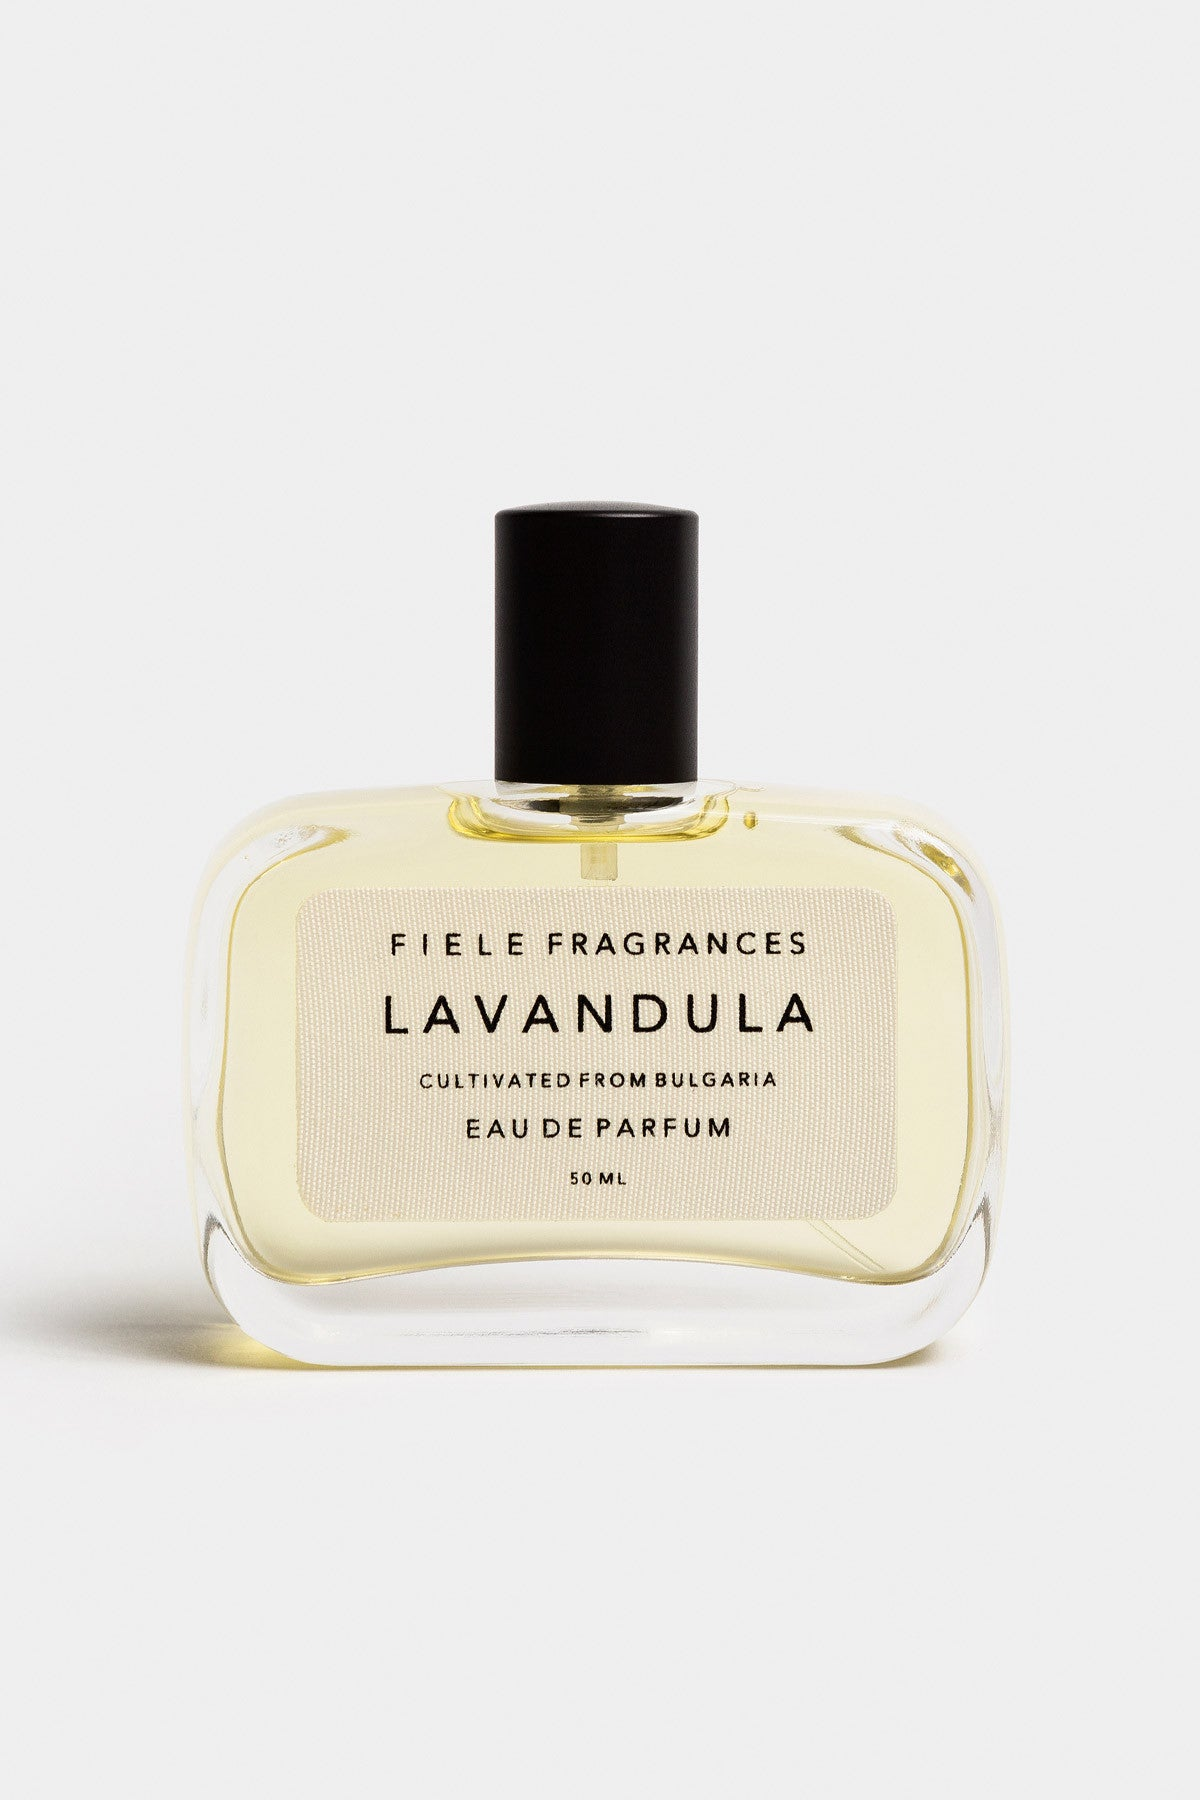 Fiele Fragrances eau de parfum in Lavandula - Vert & Vogue